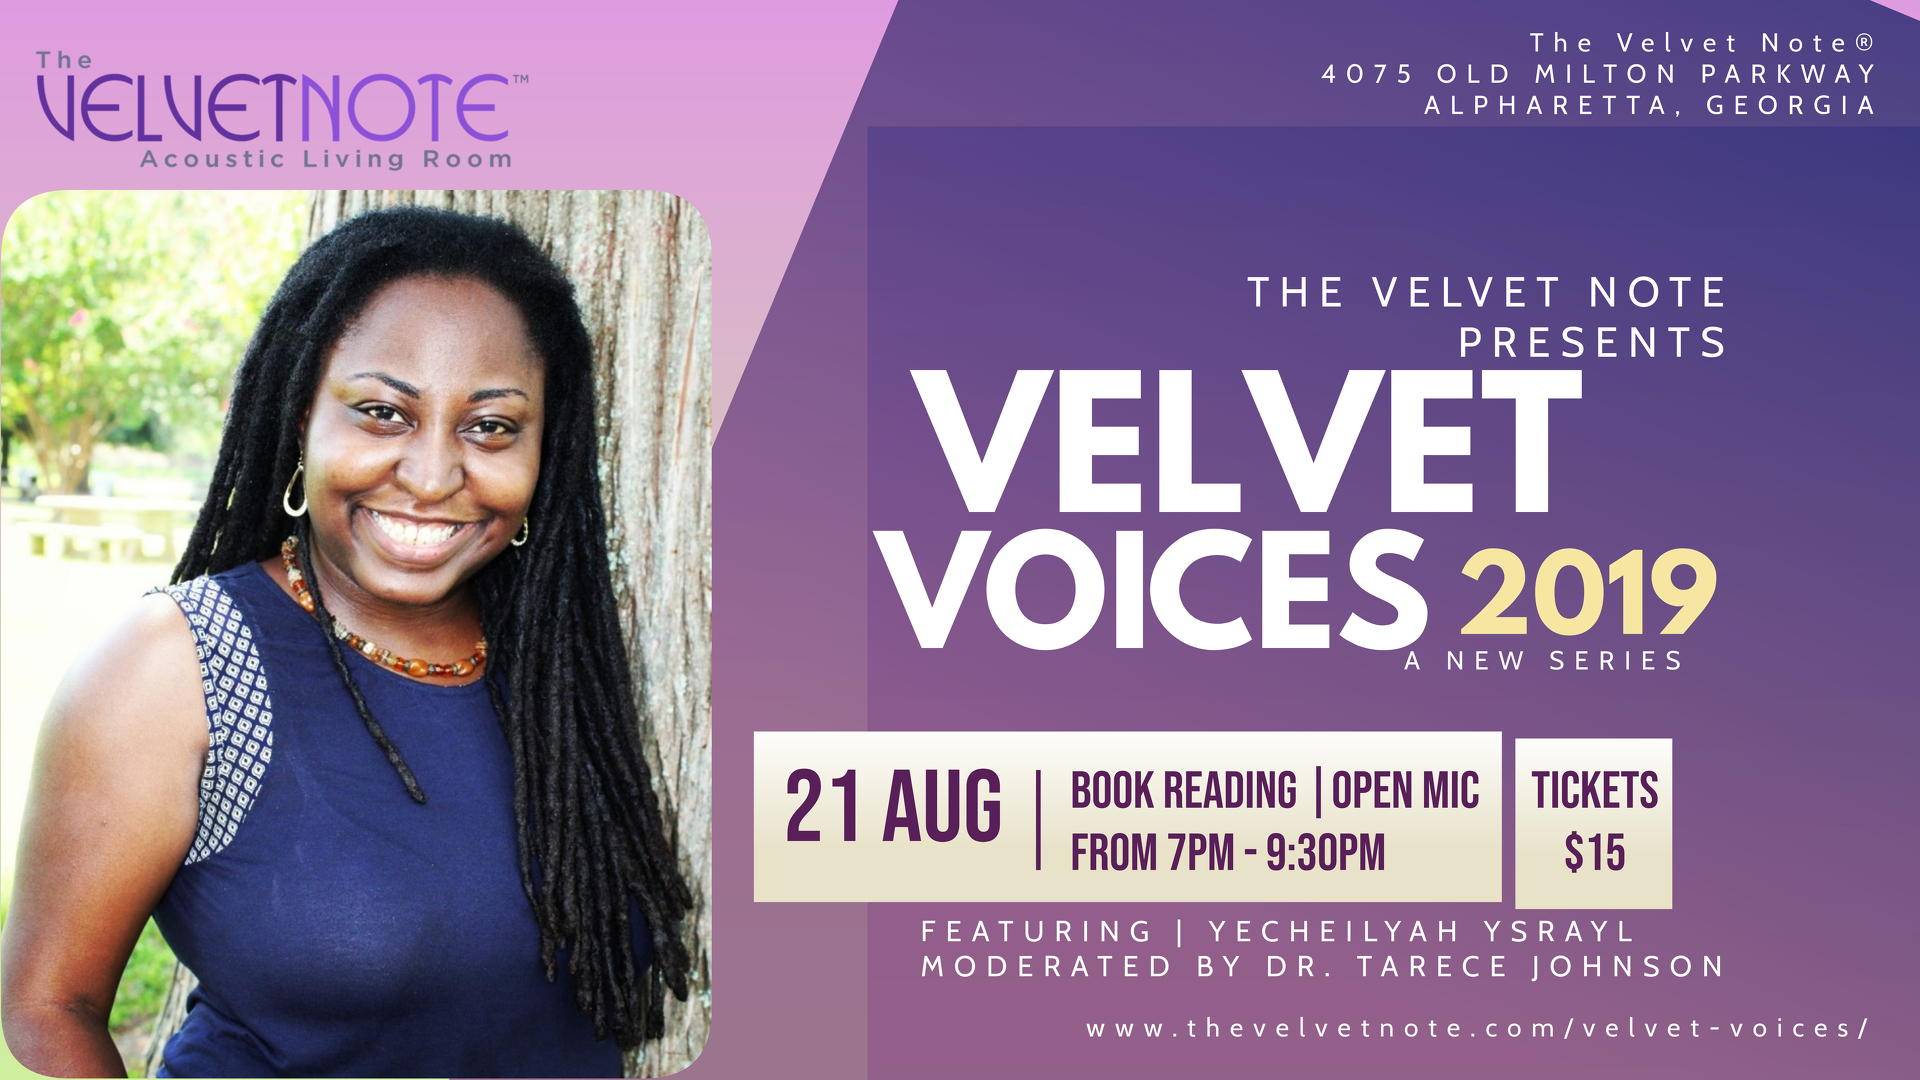 Velvet Voices - Wednesday, August 21, 2019